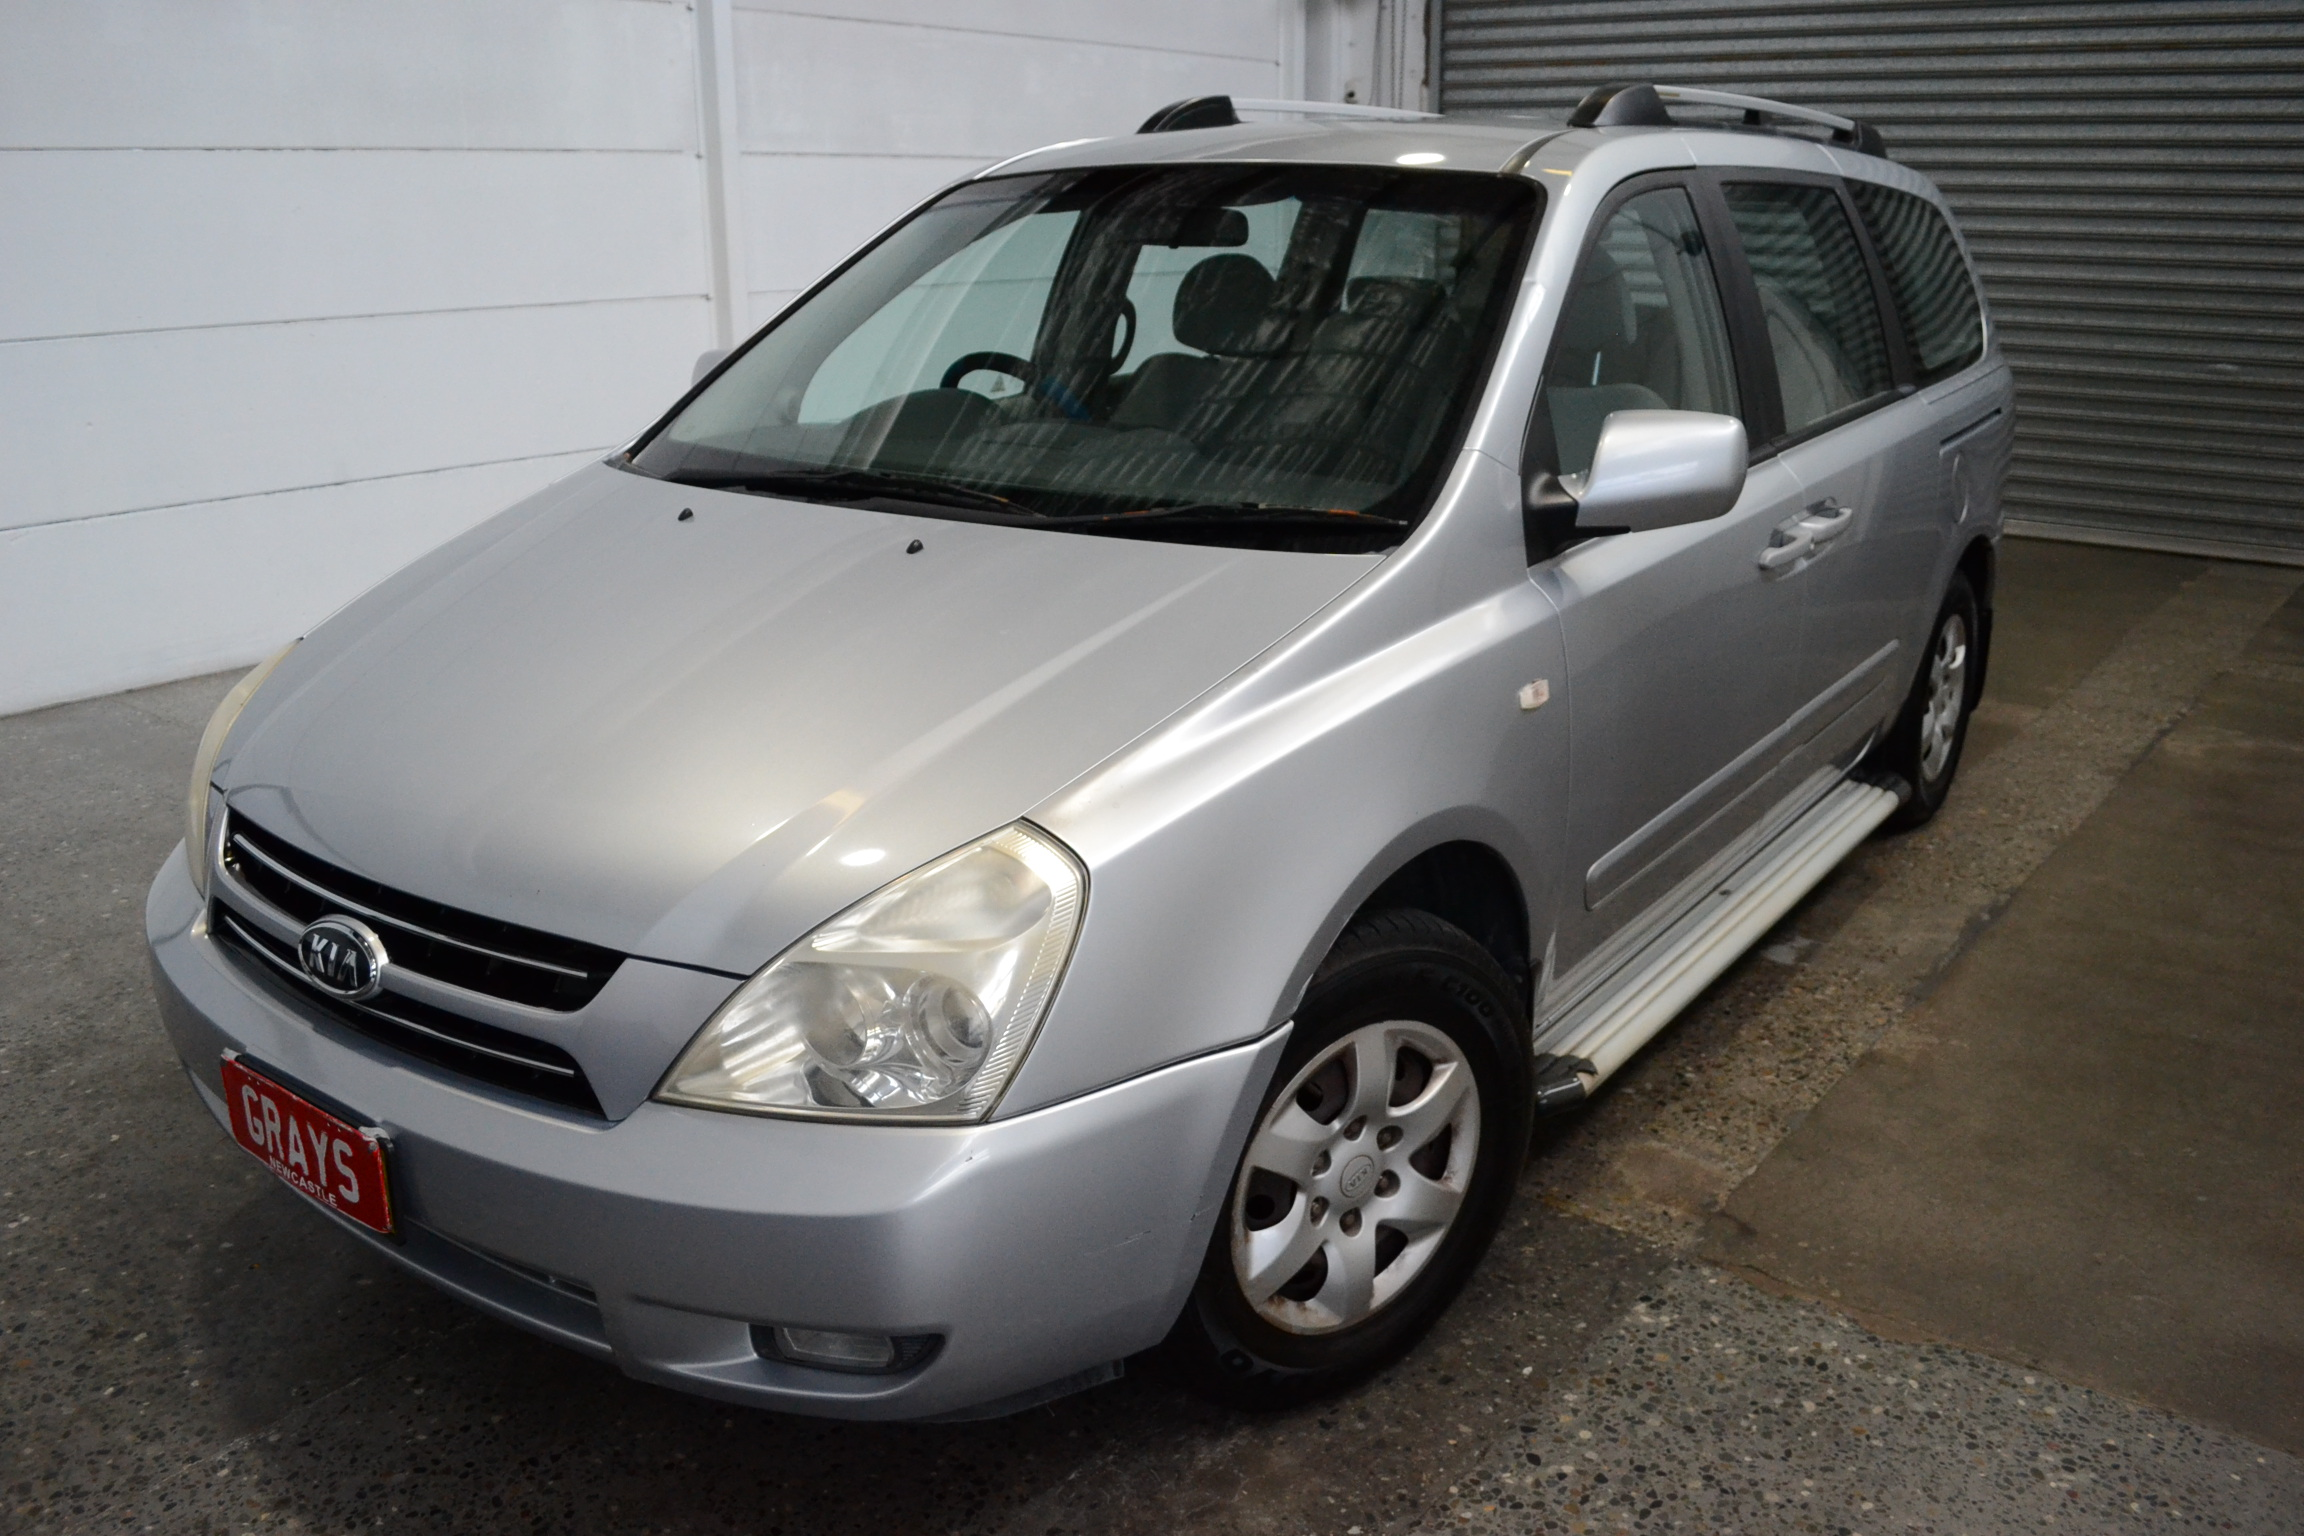 Kia Carnival LS Automatic 8 Seats People Mover